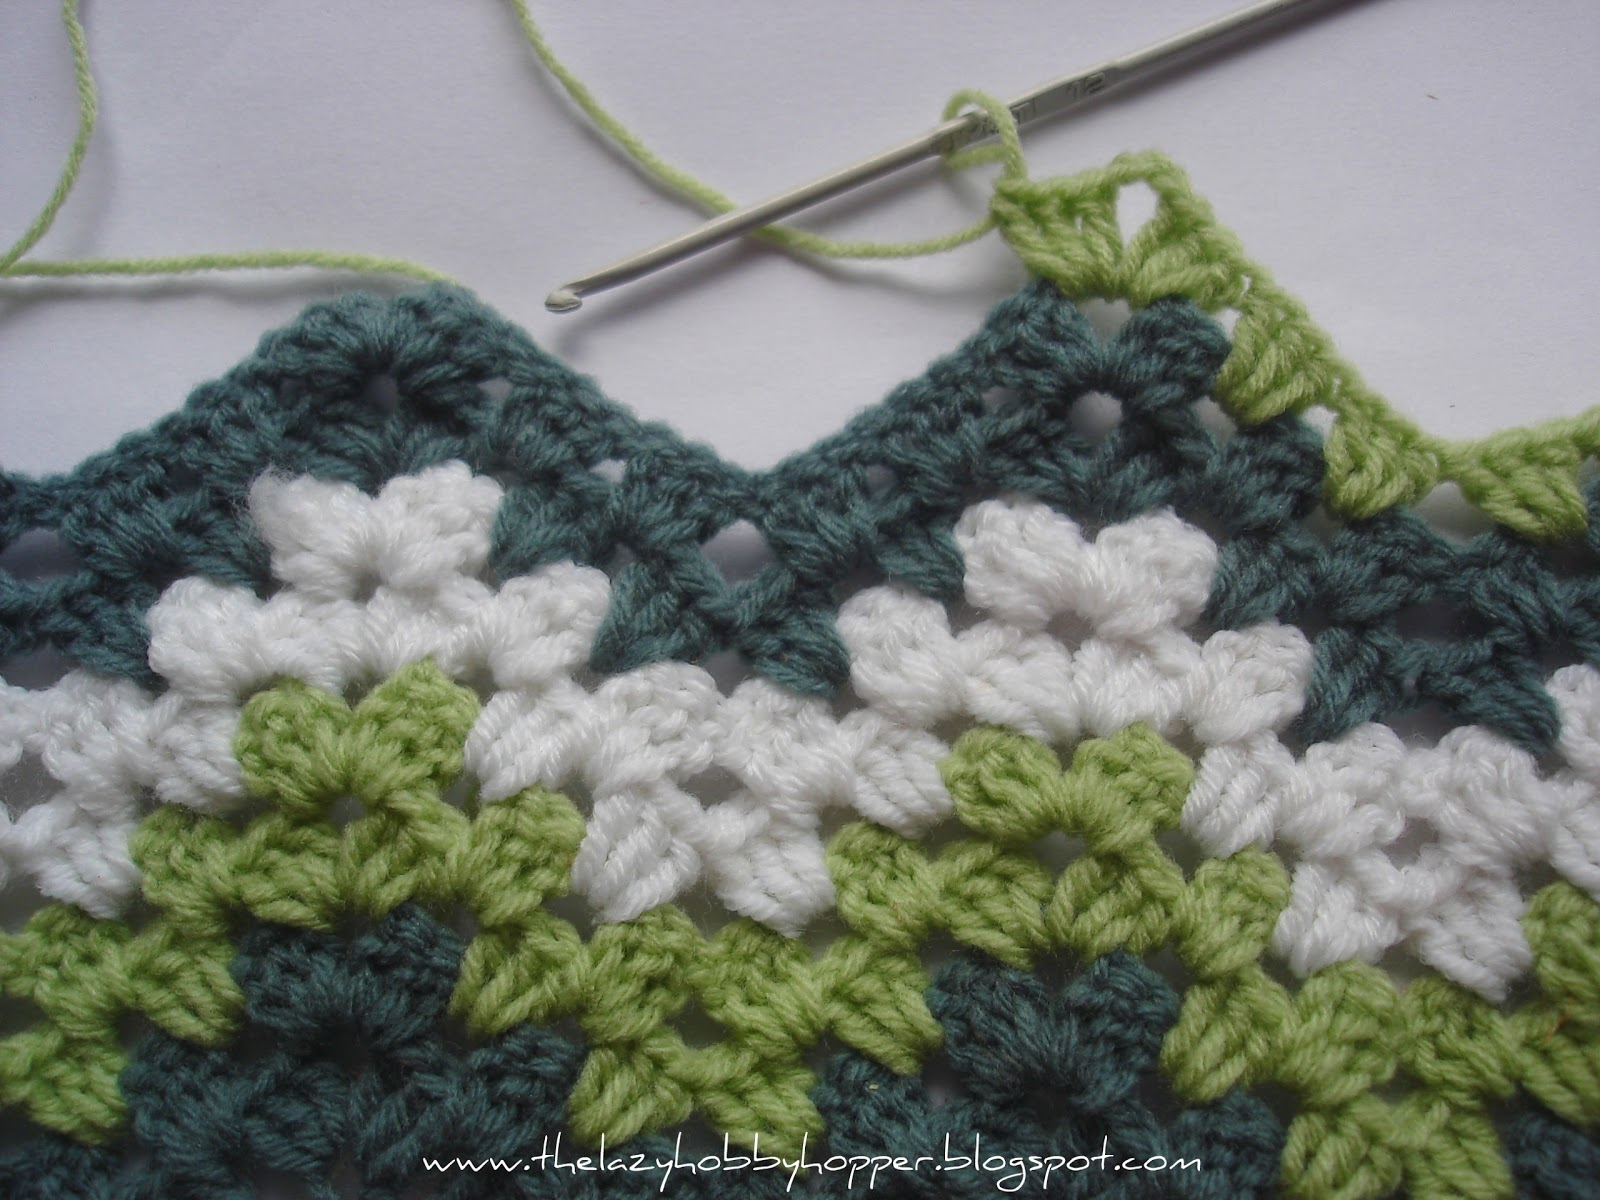 Crochet Afghan Pattern Zig Zag : The Lazy Hobbyhopper: How to crochet granny ripple